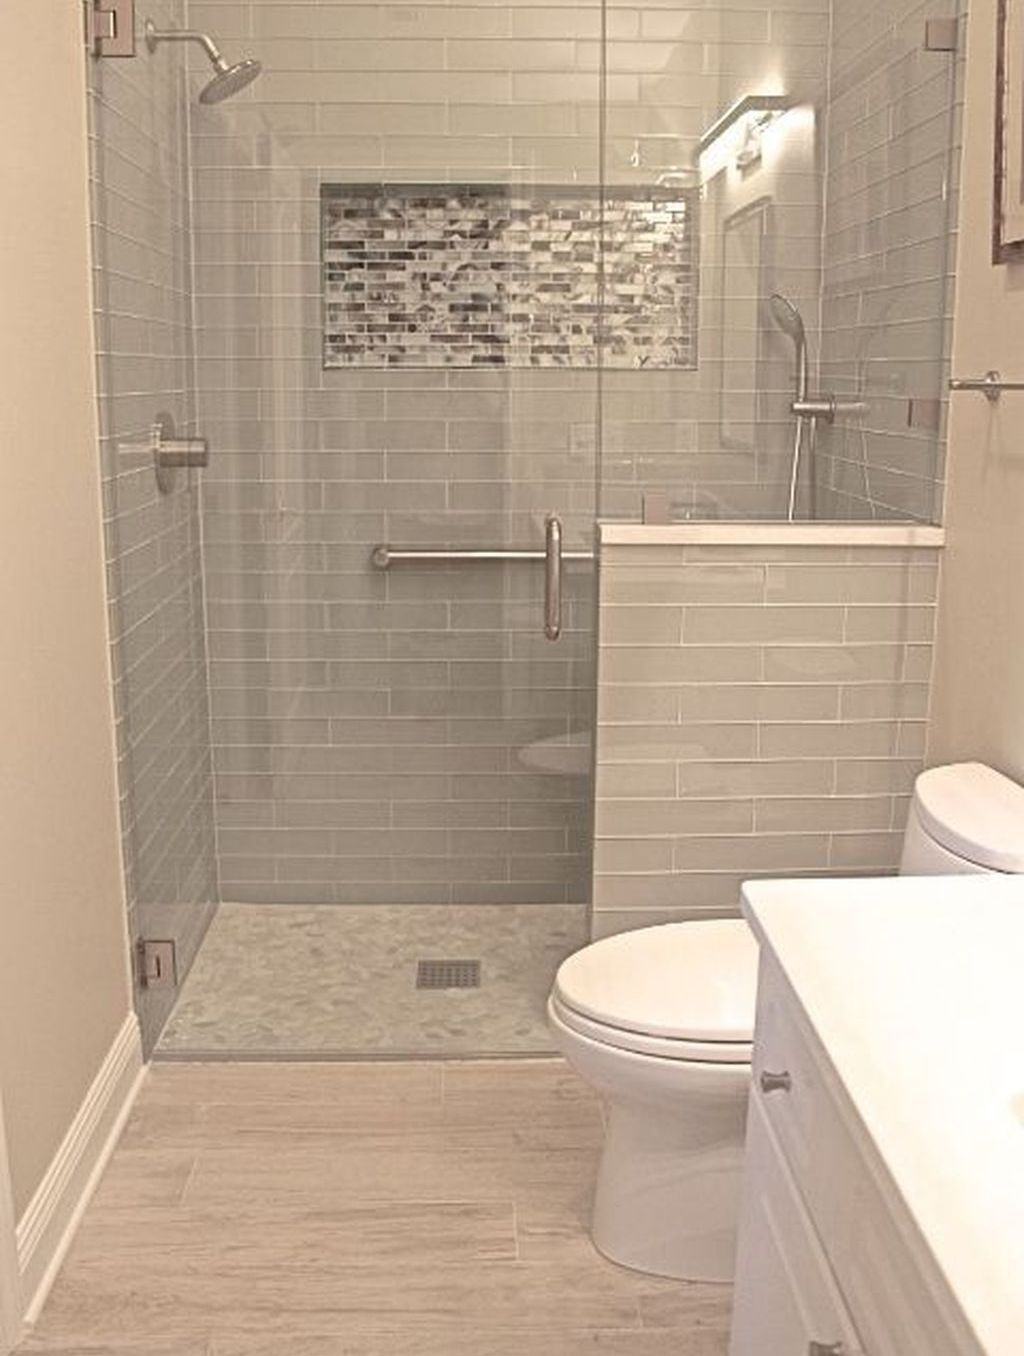 Intend To Restore Your Bathroom However Perplexed What Type Of Layout Is Excellent Obtain Inspire Small Bathroom Master Bathroom Renovation Bathrooms Remodel